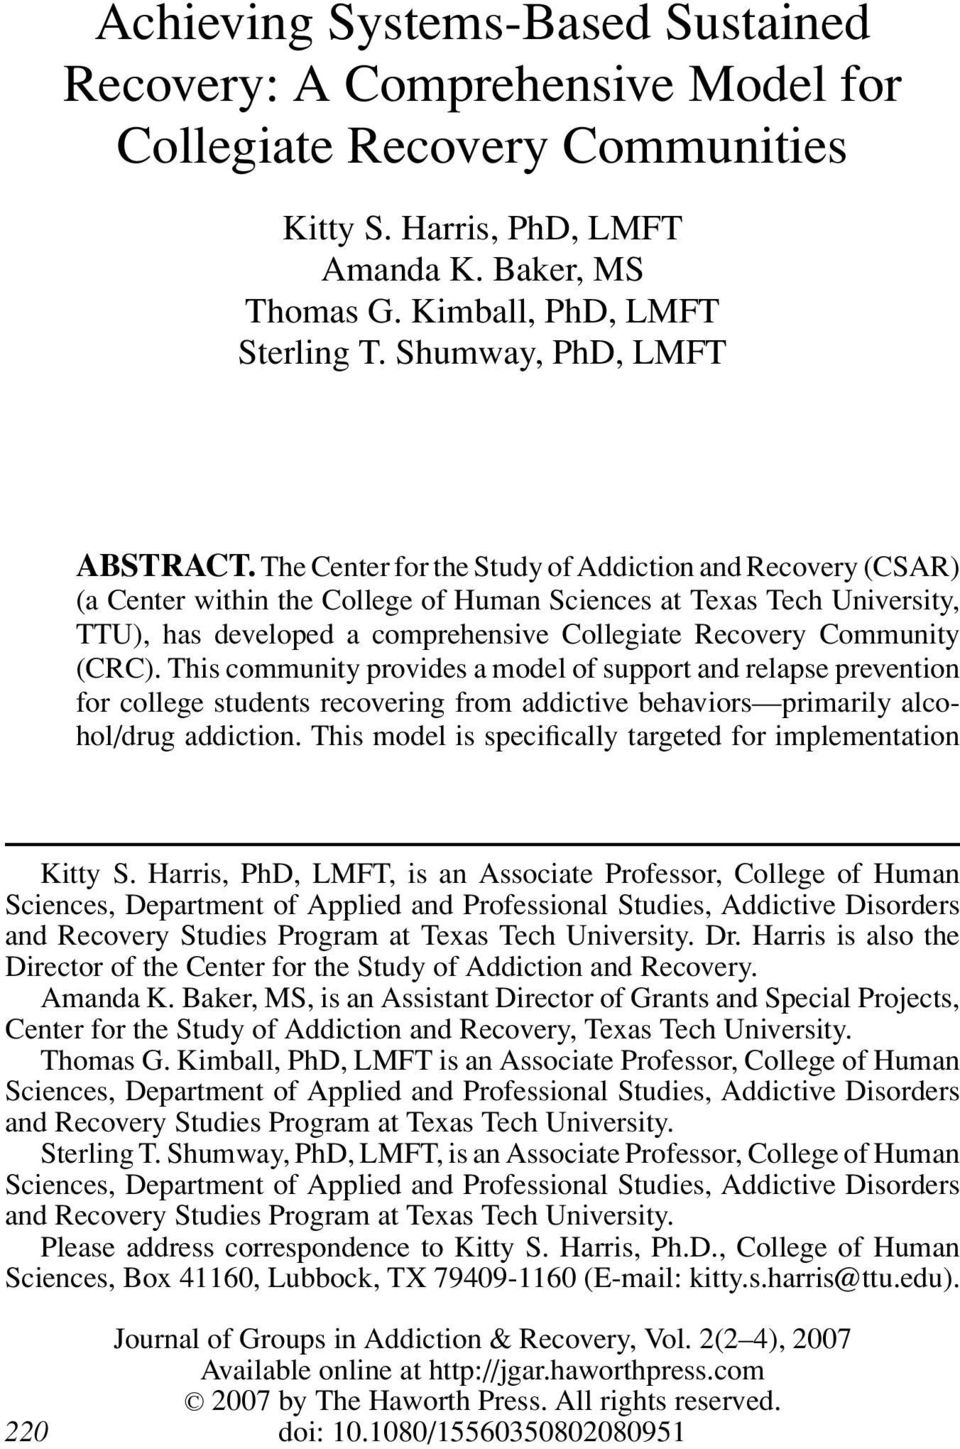 The Center for the Study of Addiction and Recovery (CSAR) (a Center within the College of Human Sciences at Texas Tech University, TTU), has developed a comprehensive Collegiate Recovery Community